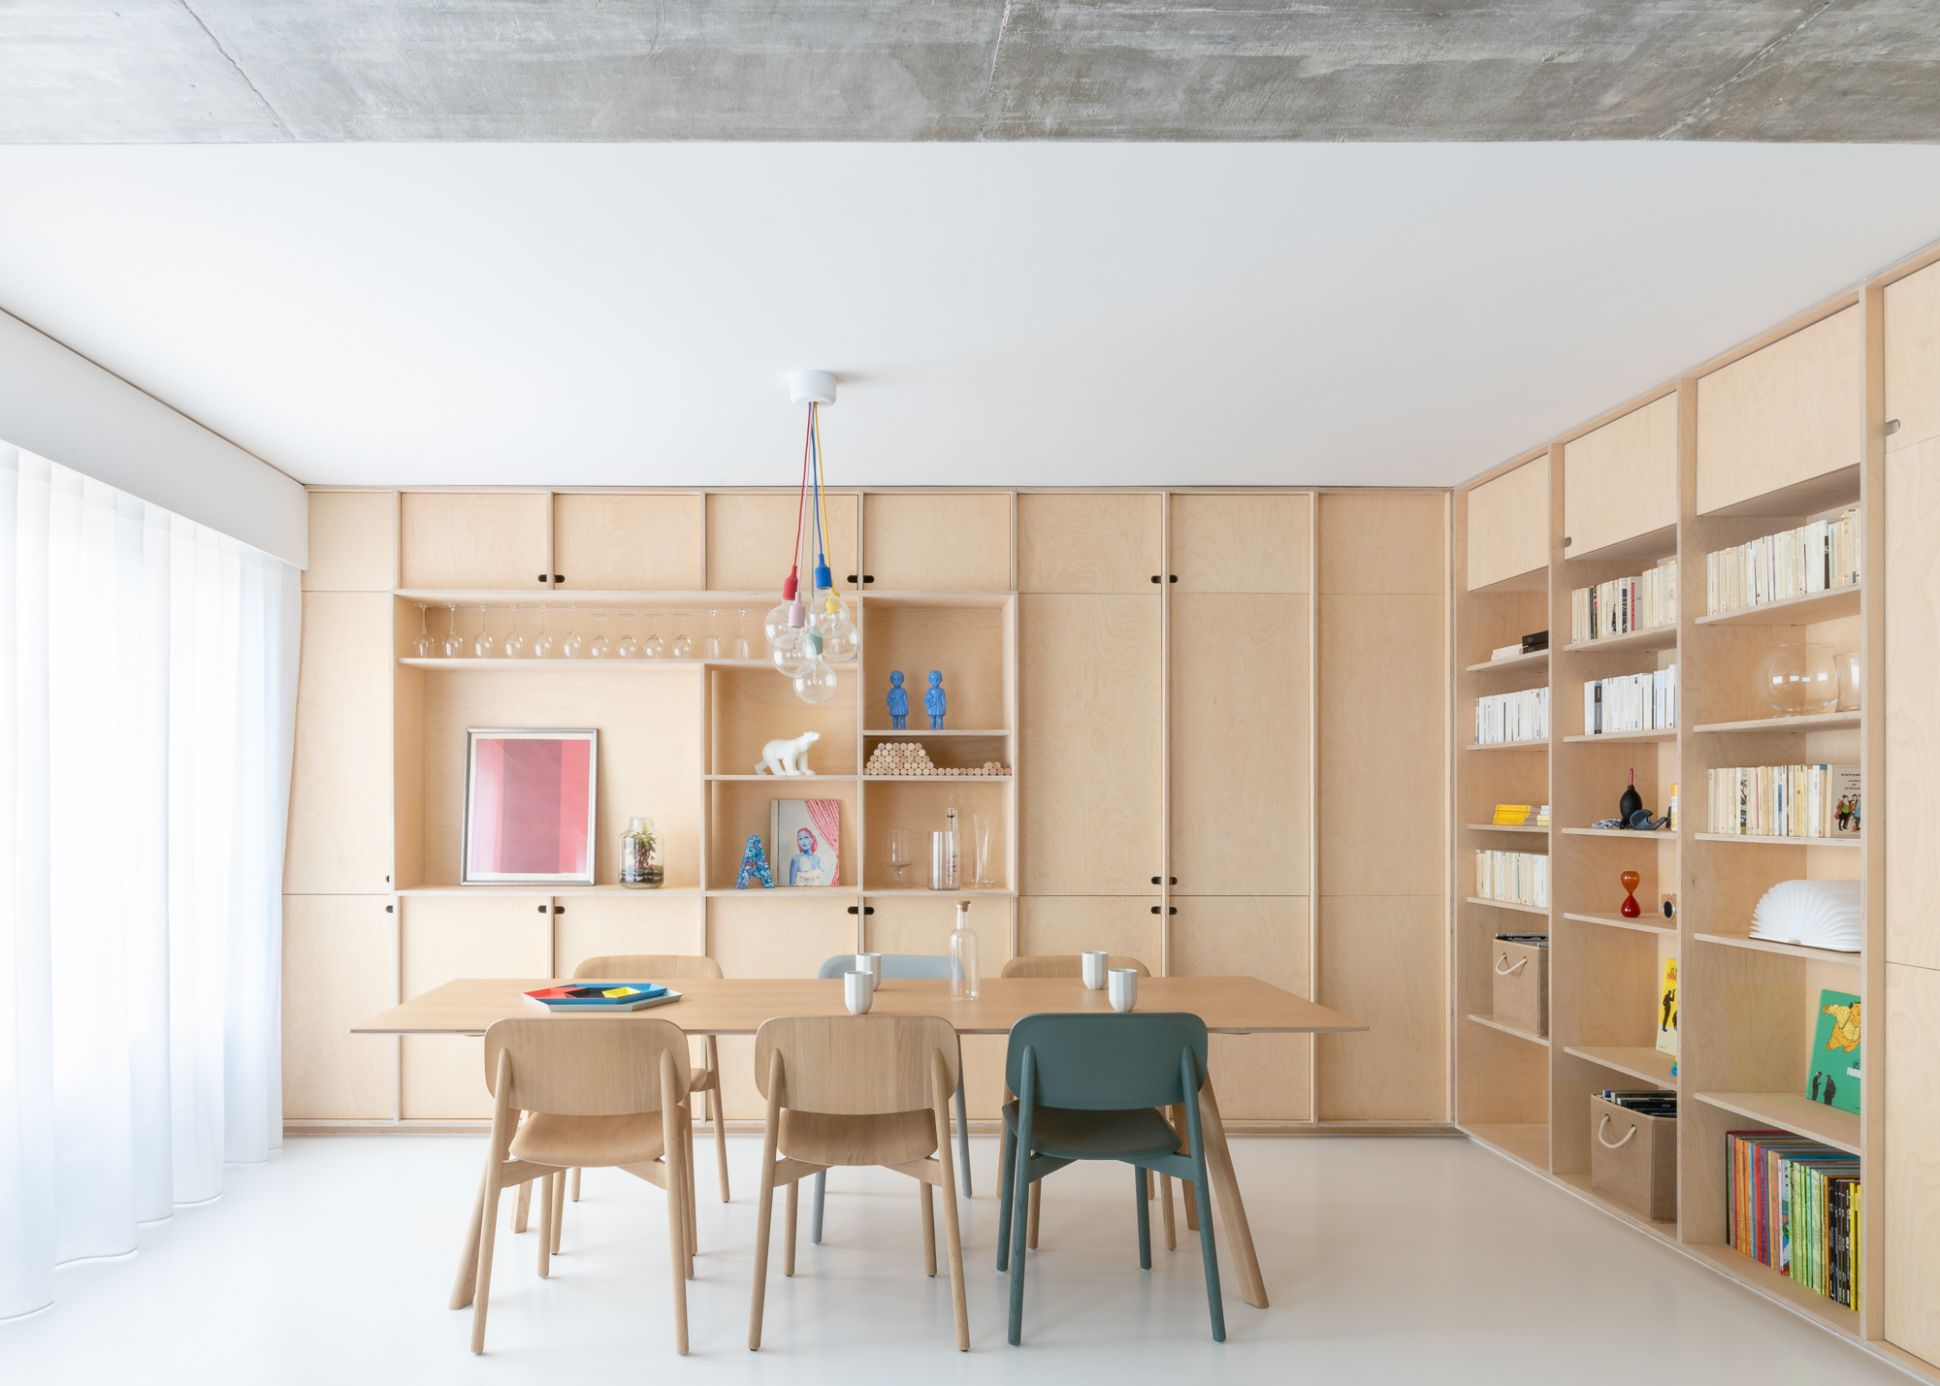 Apartment interiors architecture and design by SABO project in ...